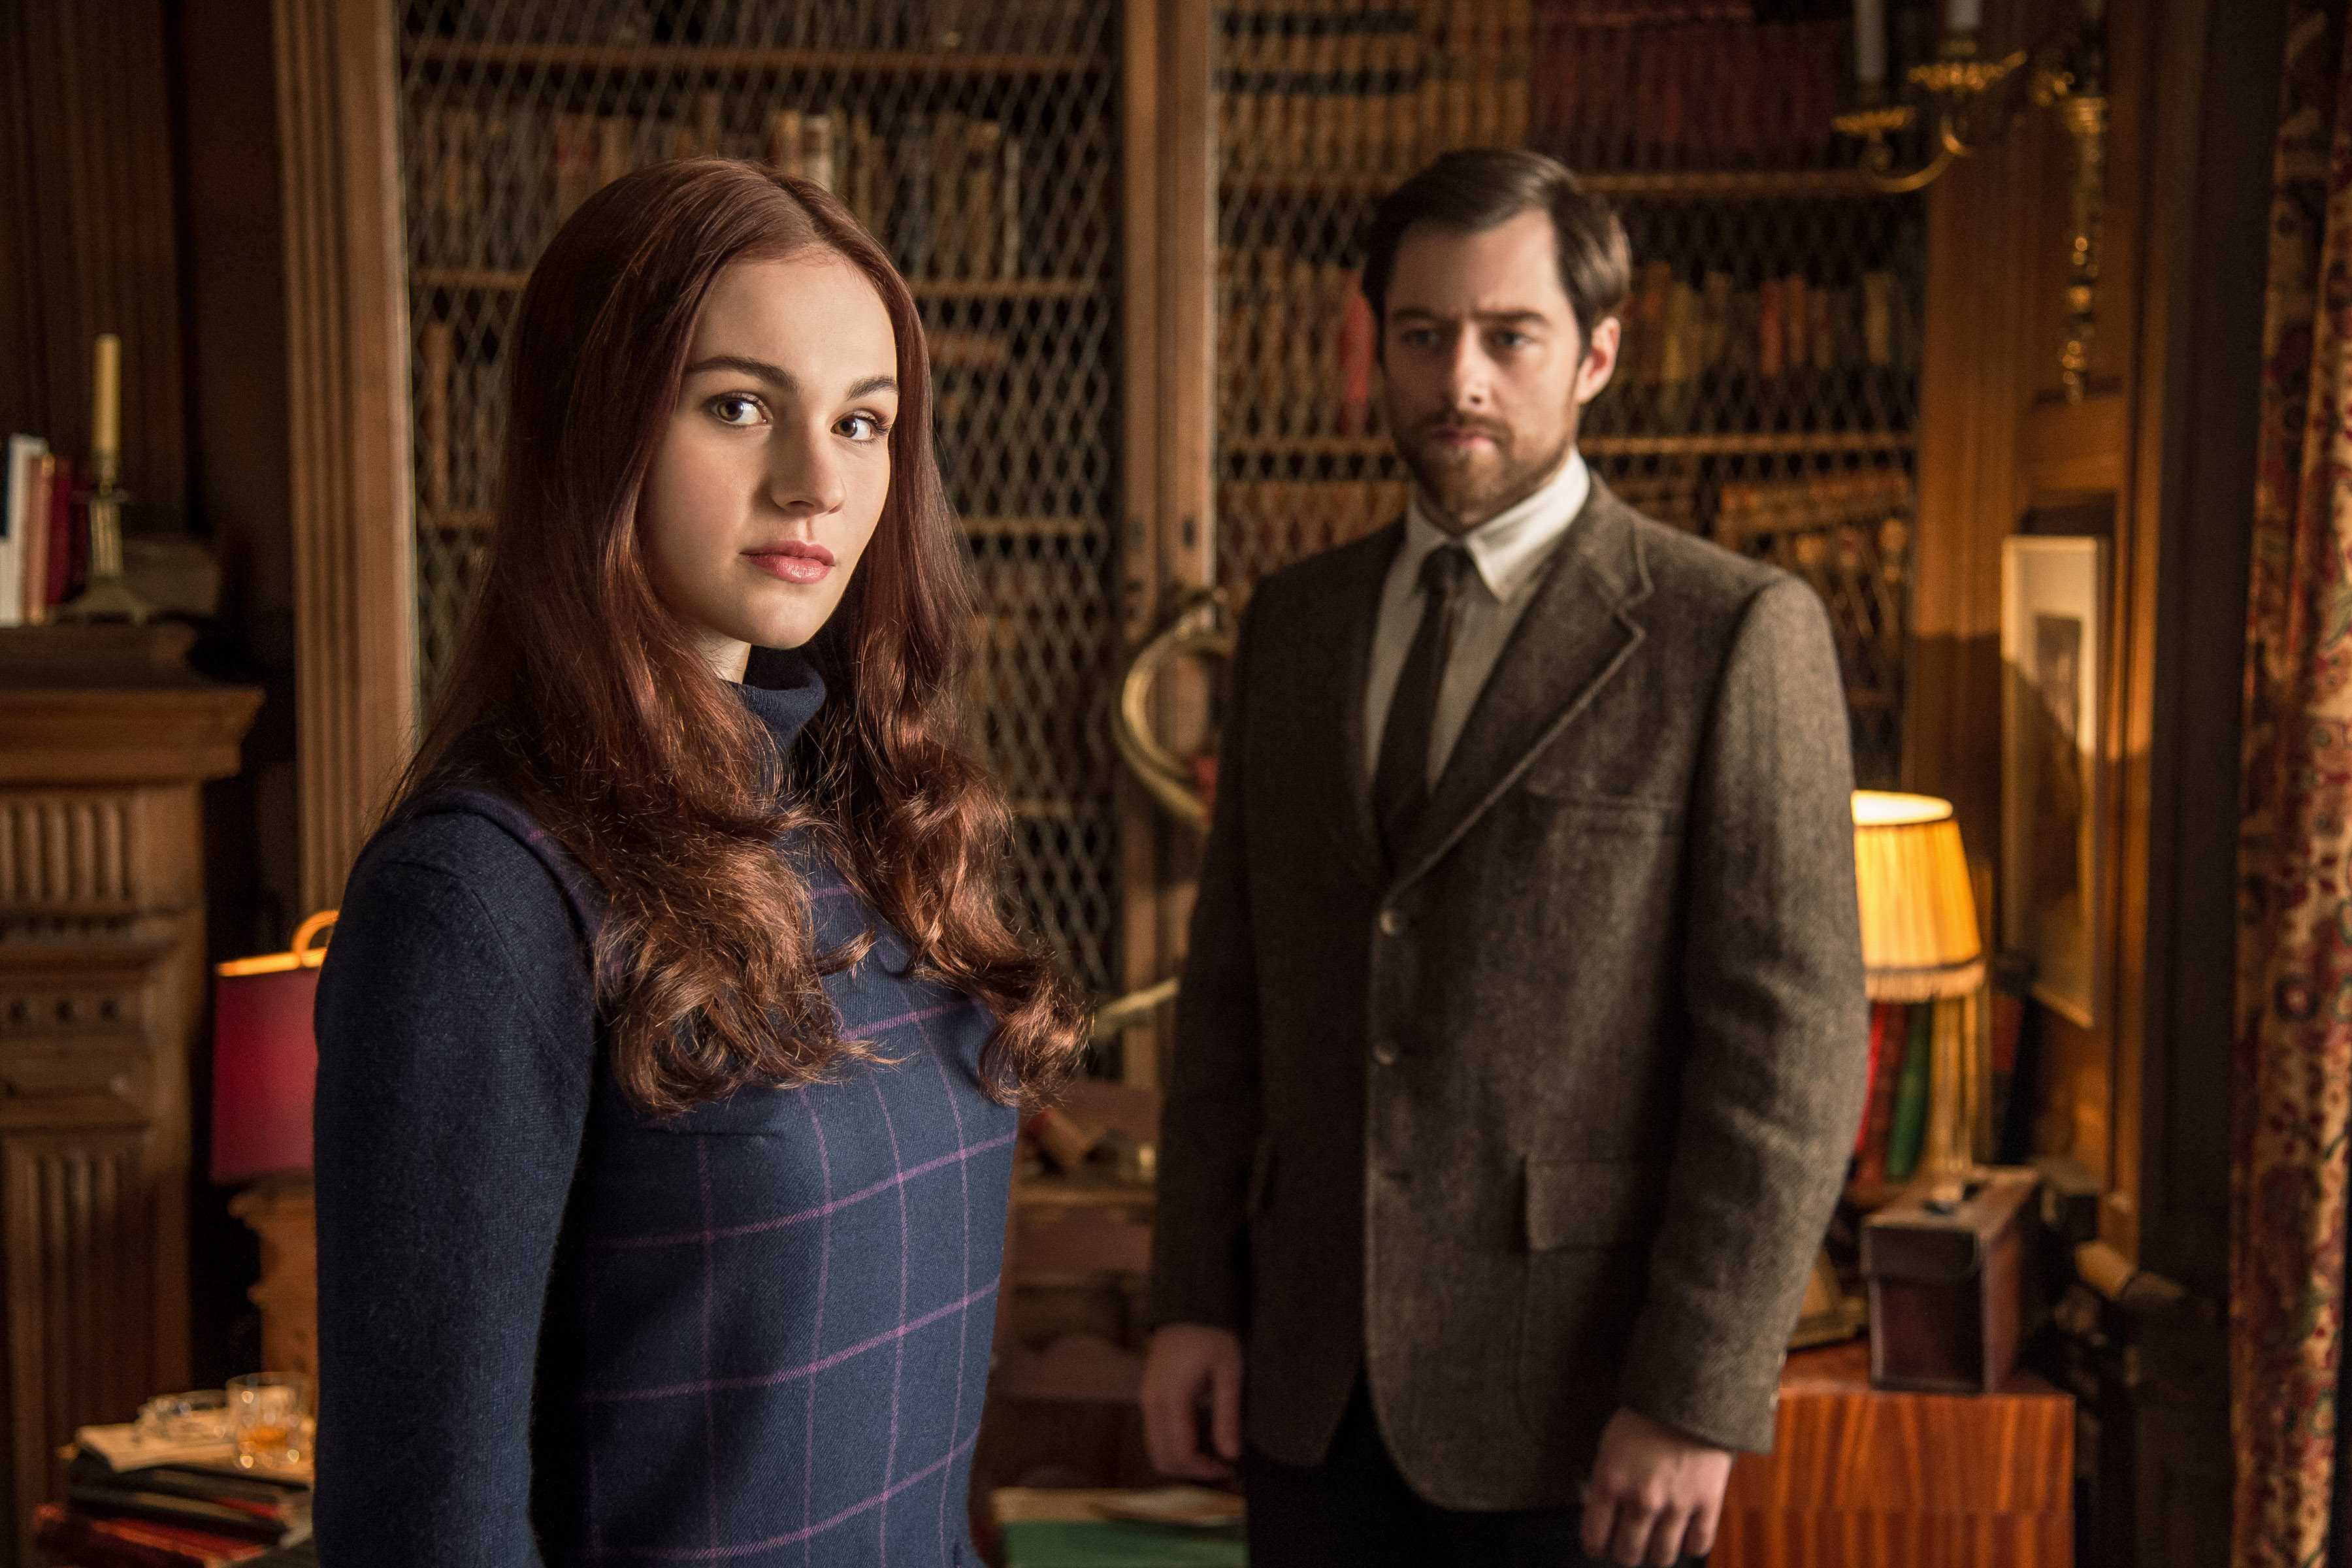 Sophie-Skelton-as-Brianna-Randall-and-Richard-Rankin-as-Roger-Wakefield-in-Outlander-Season-2-Episode-13-Dragonfly-in-Amber